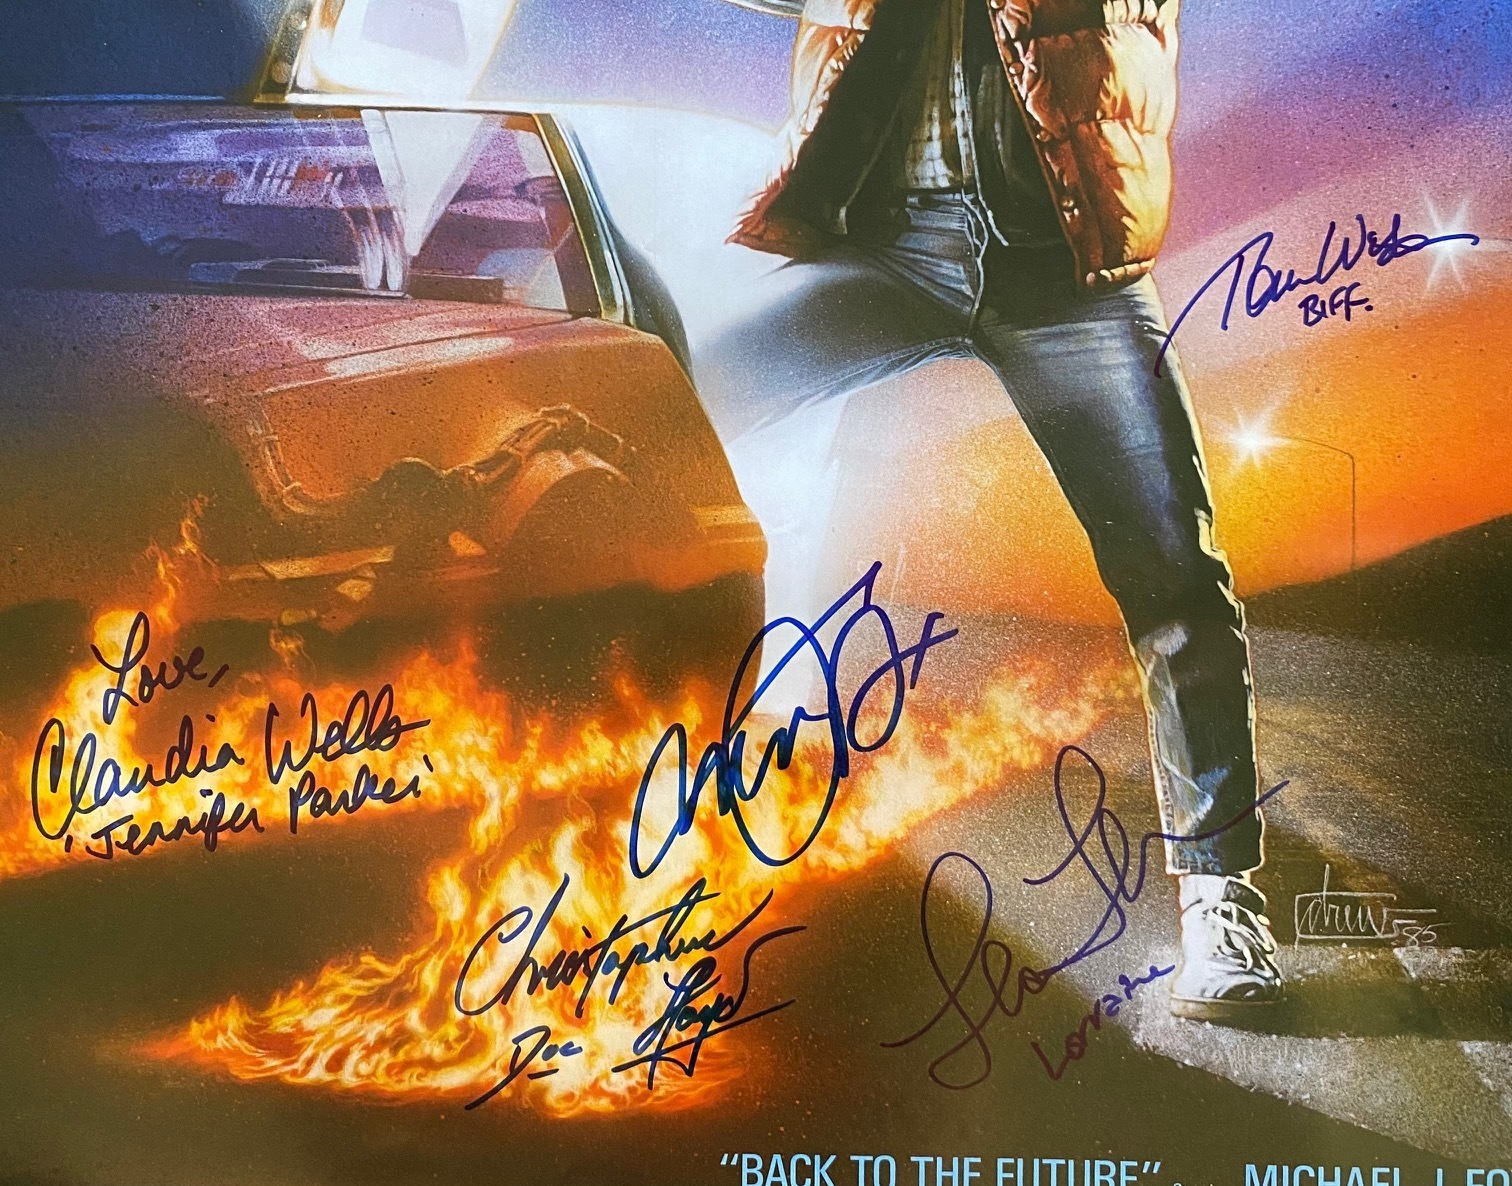 future full cast signed poster